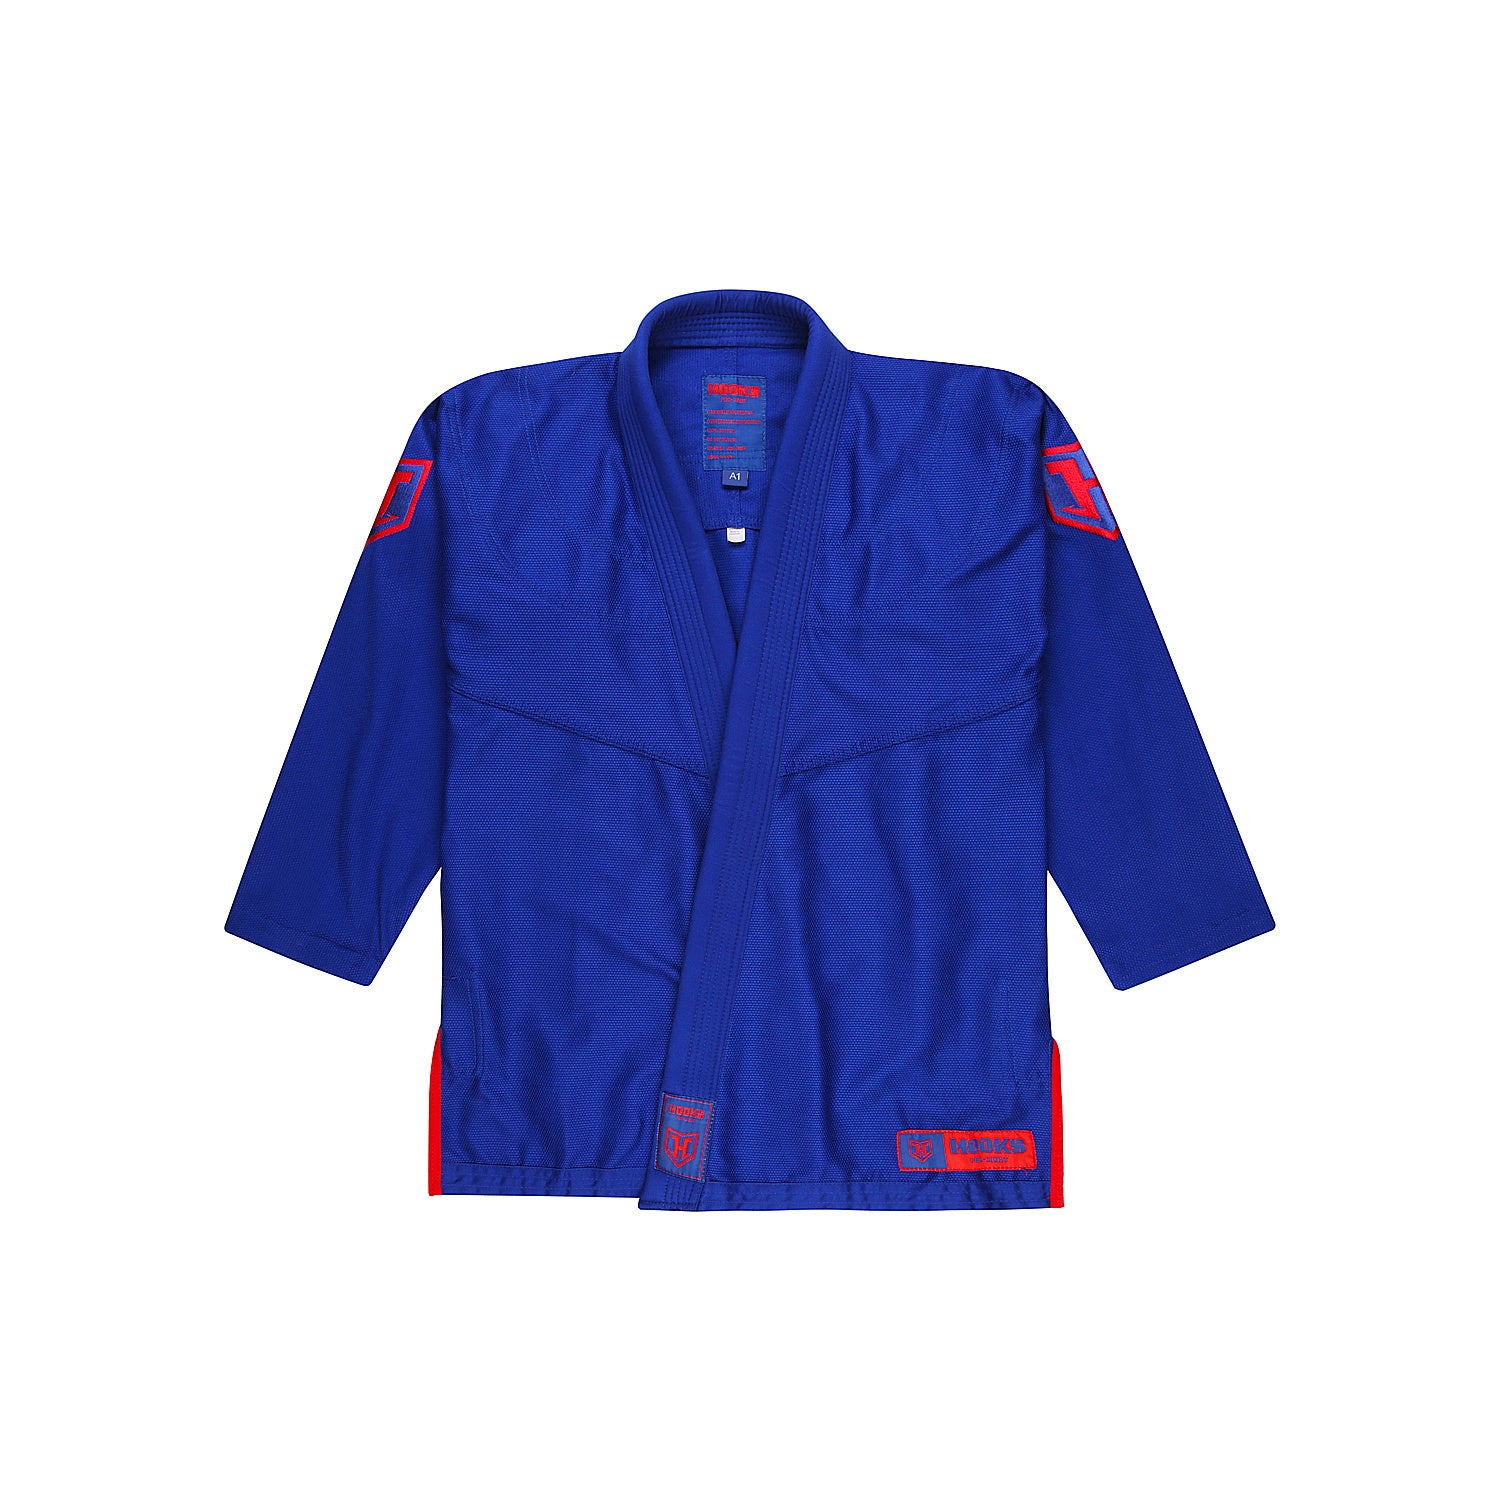 Hooks Pro Light Jiu Jitsu Gi -  Blue